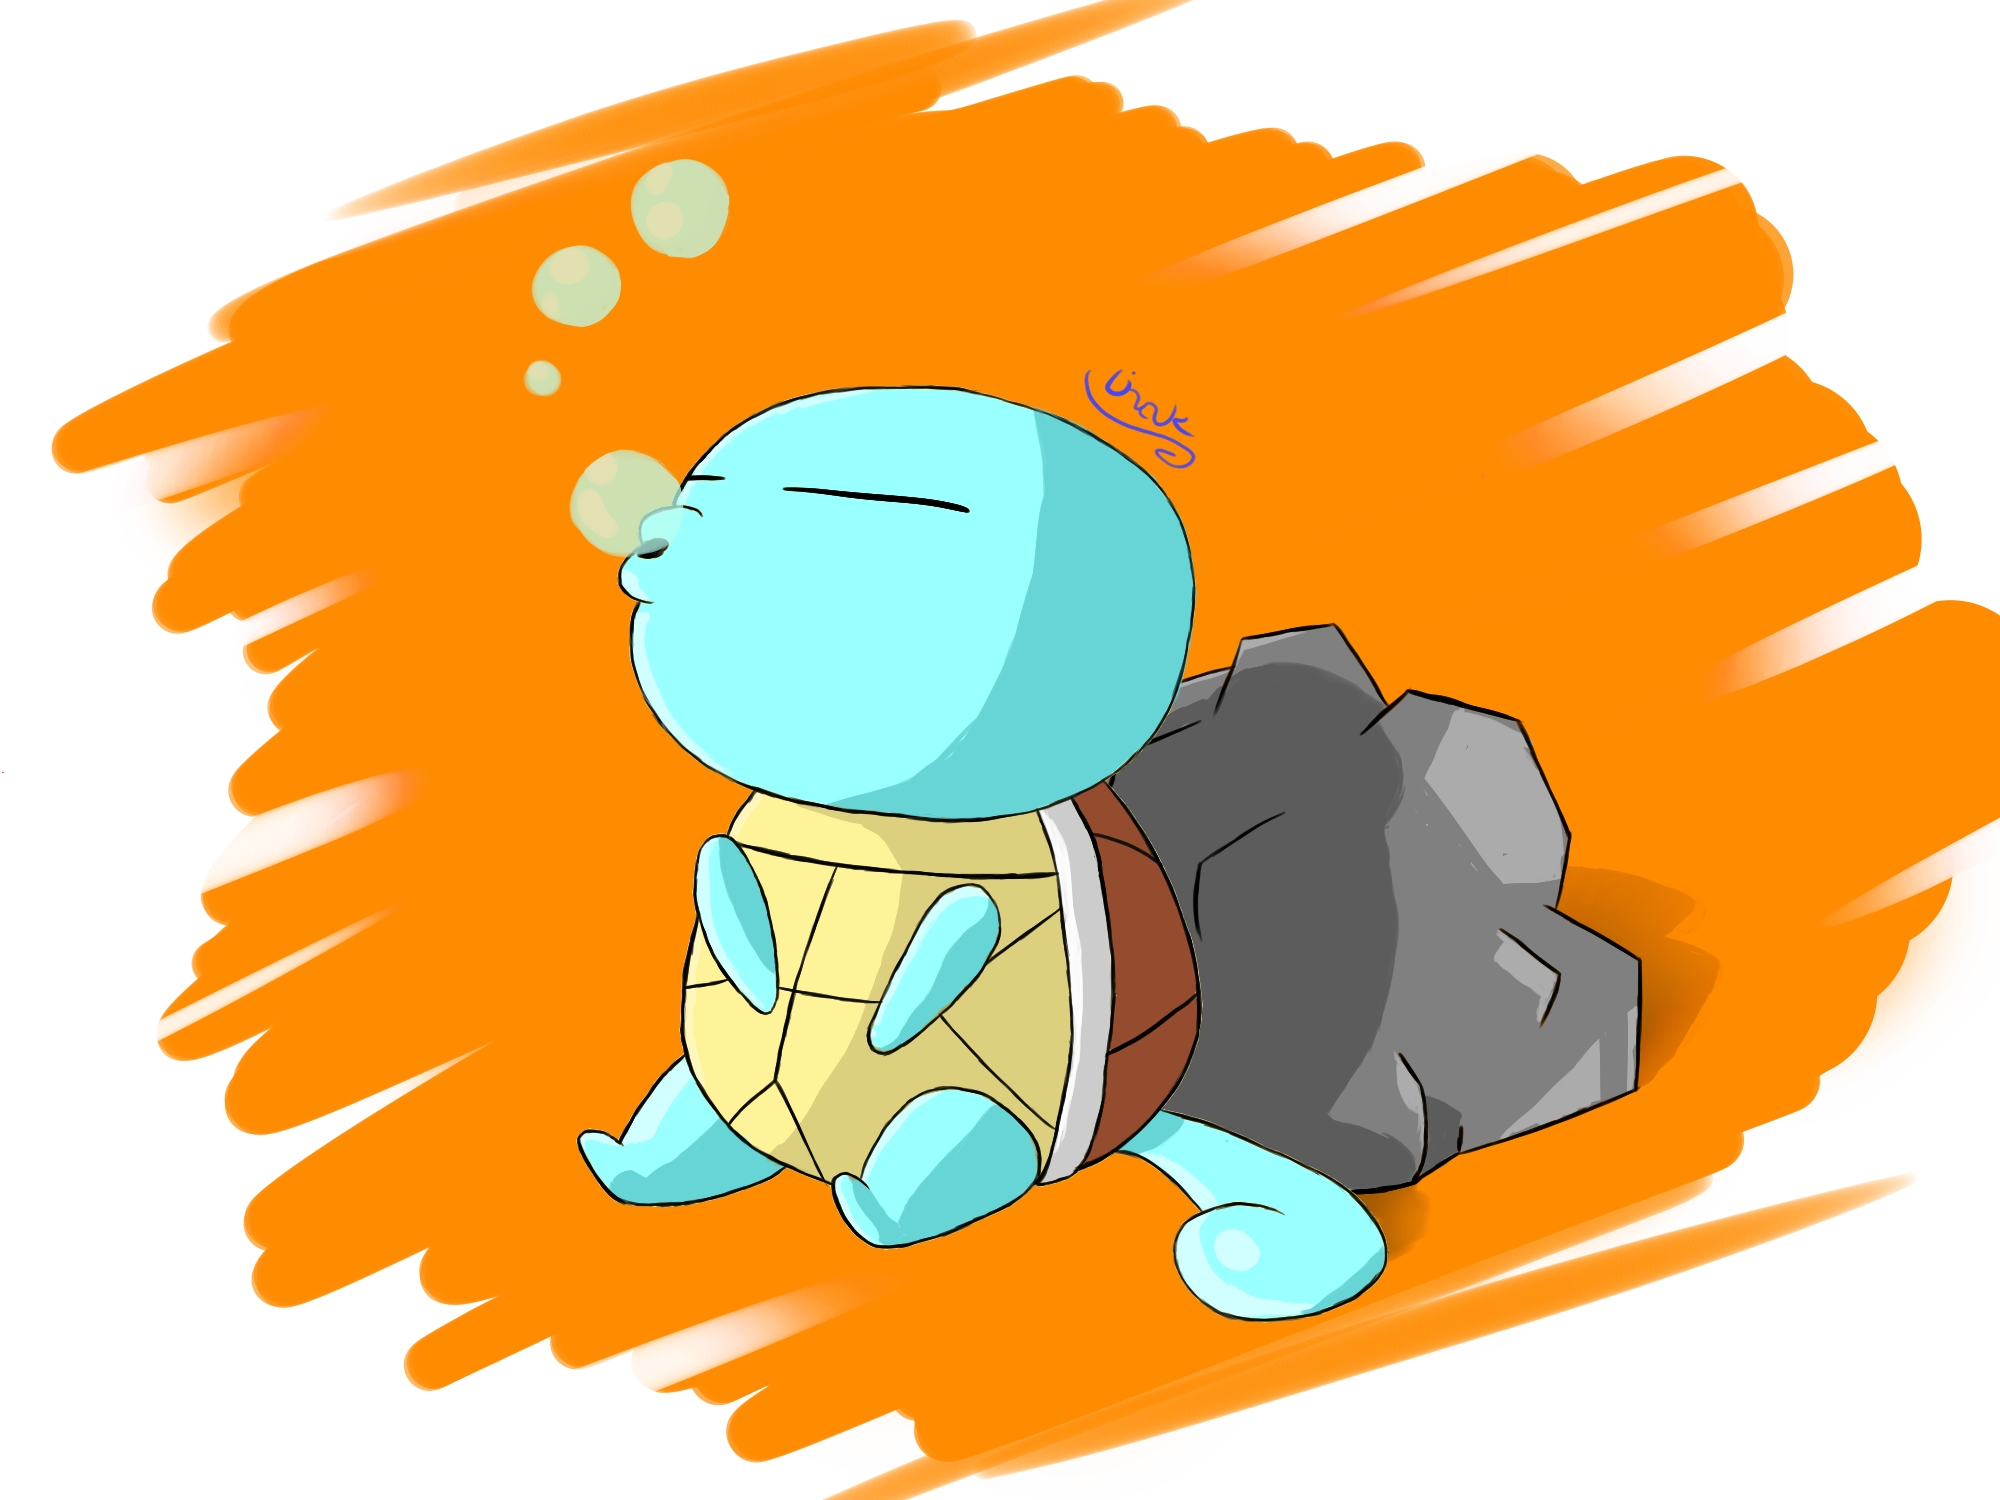 SquirtleSquirt